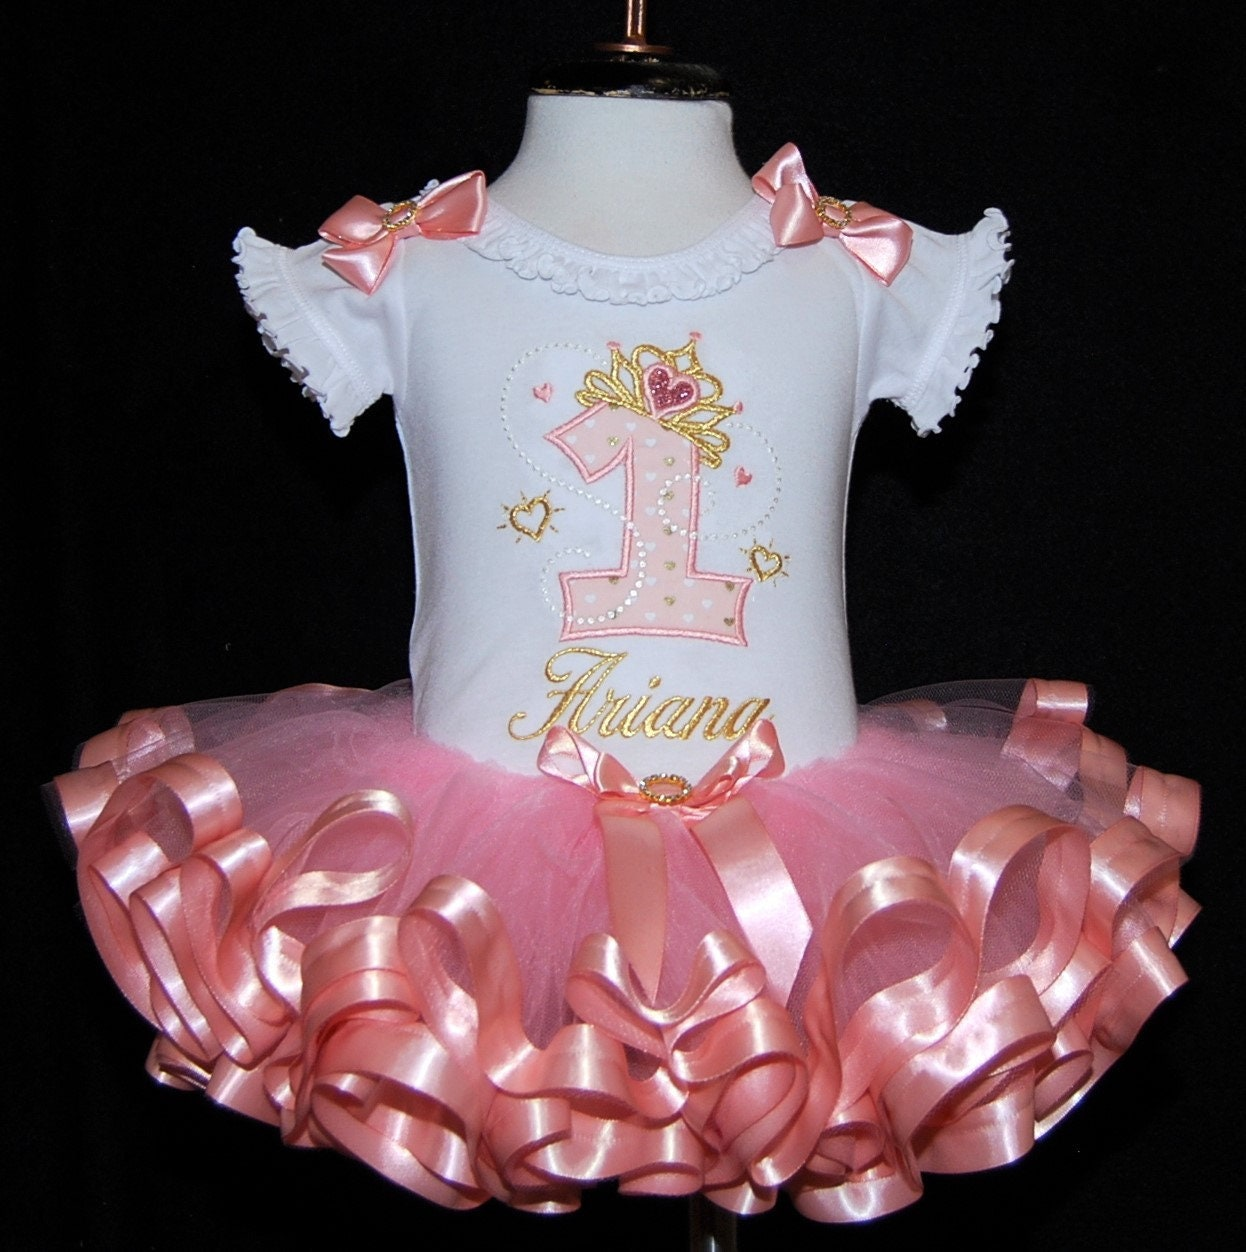 1st birthday girl outfit, gold tiara princess birthday dress